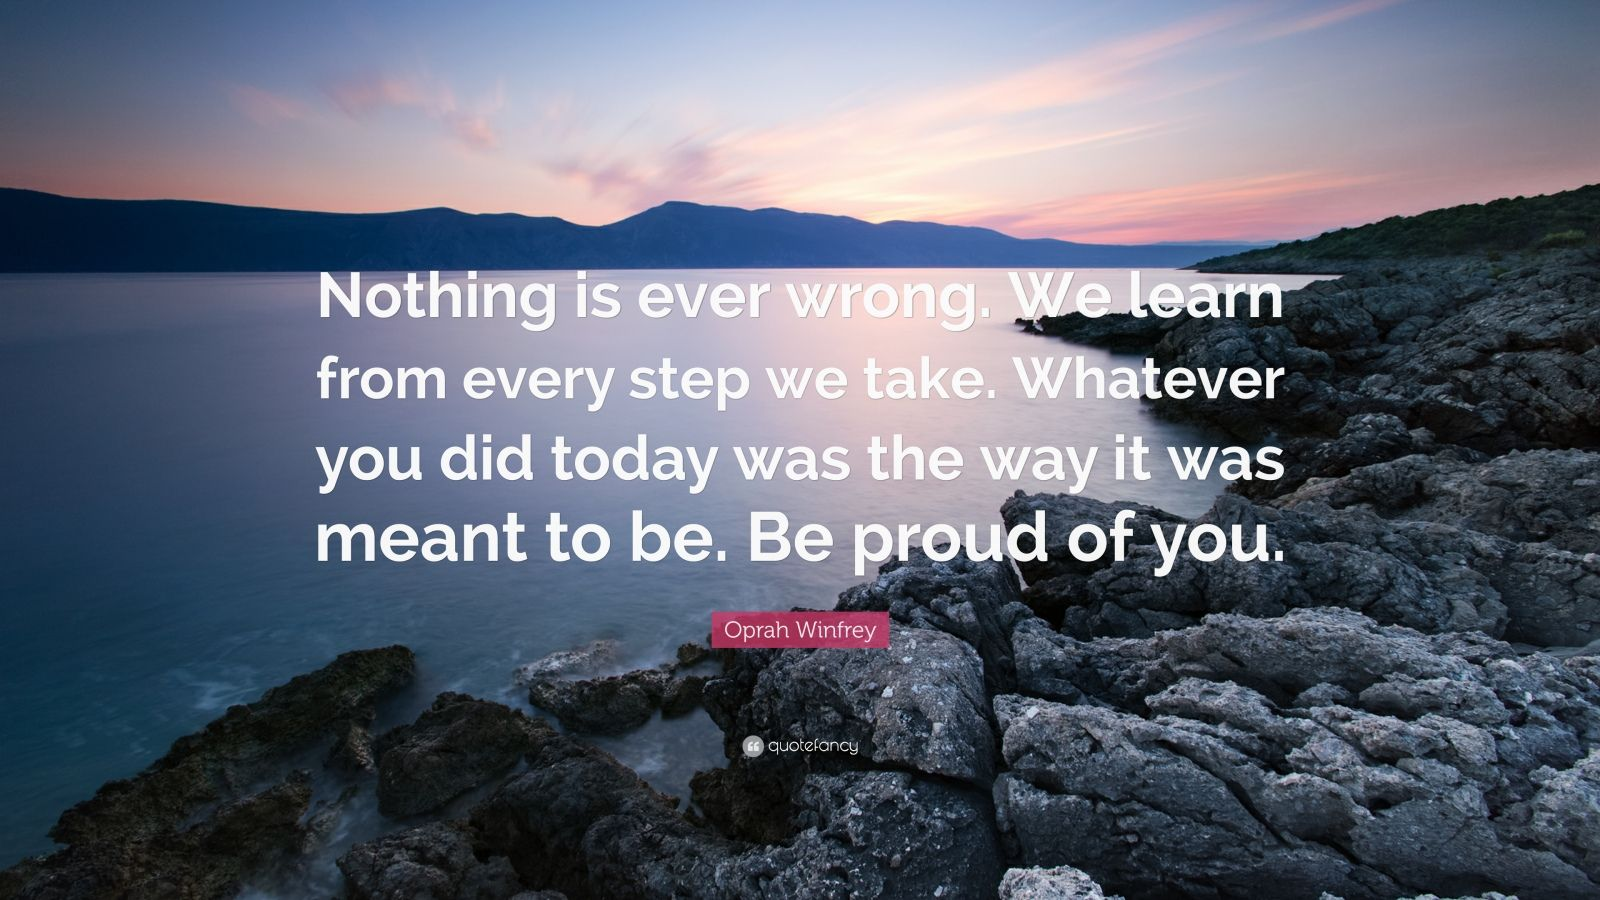 """Oprah Winfrey Quote: """"Nothing is ever wrong. We learn from every step we take. Whatever you did today was the way it was meant to be. Be proud of you."""""""